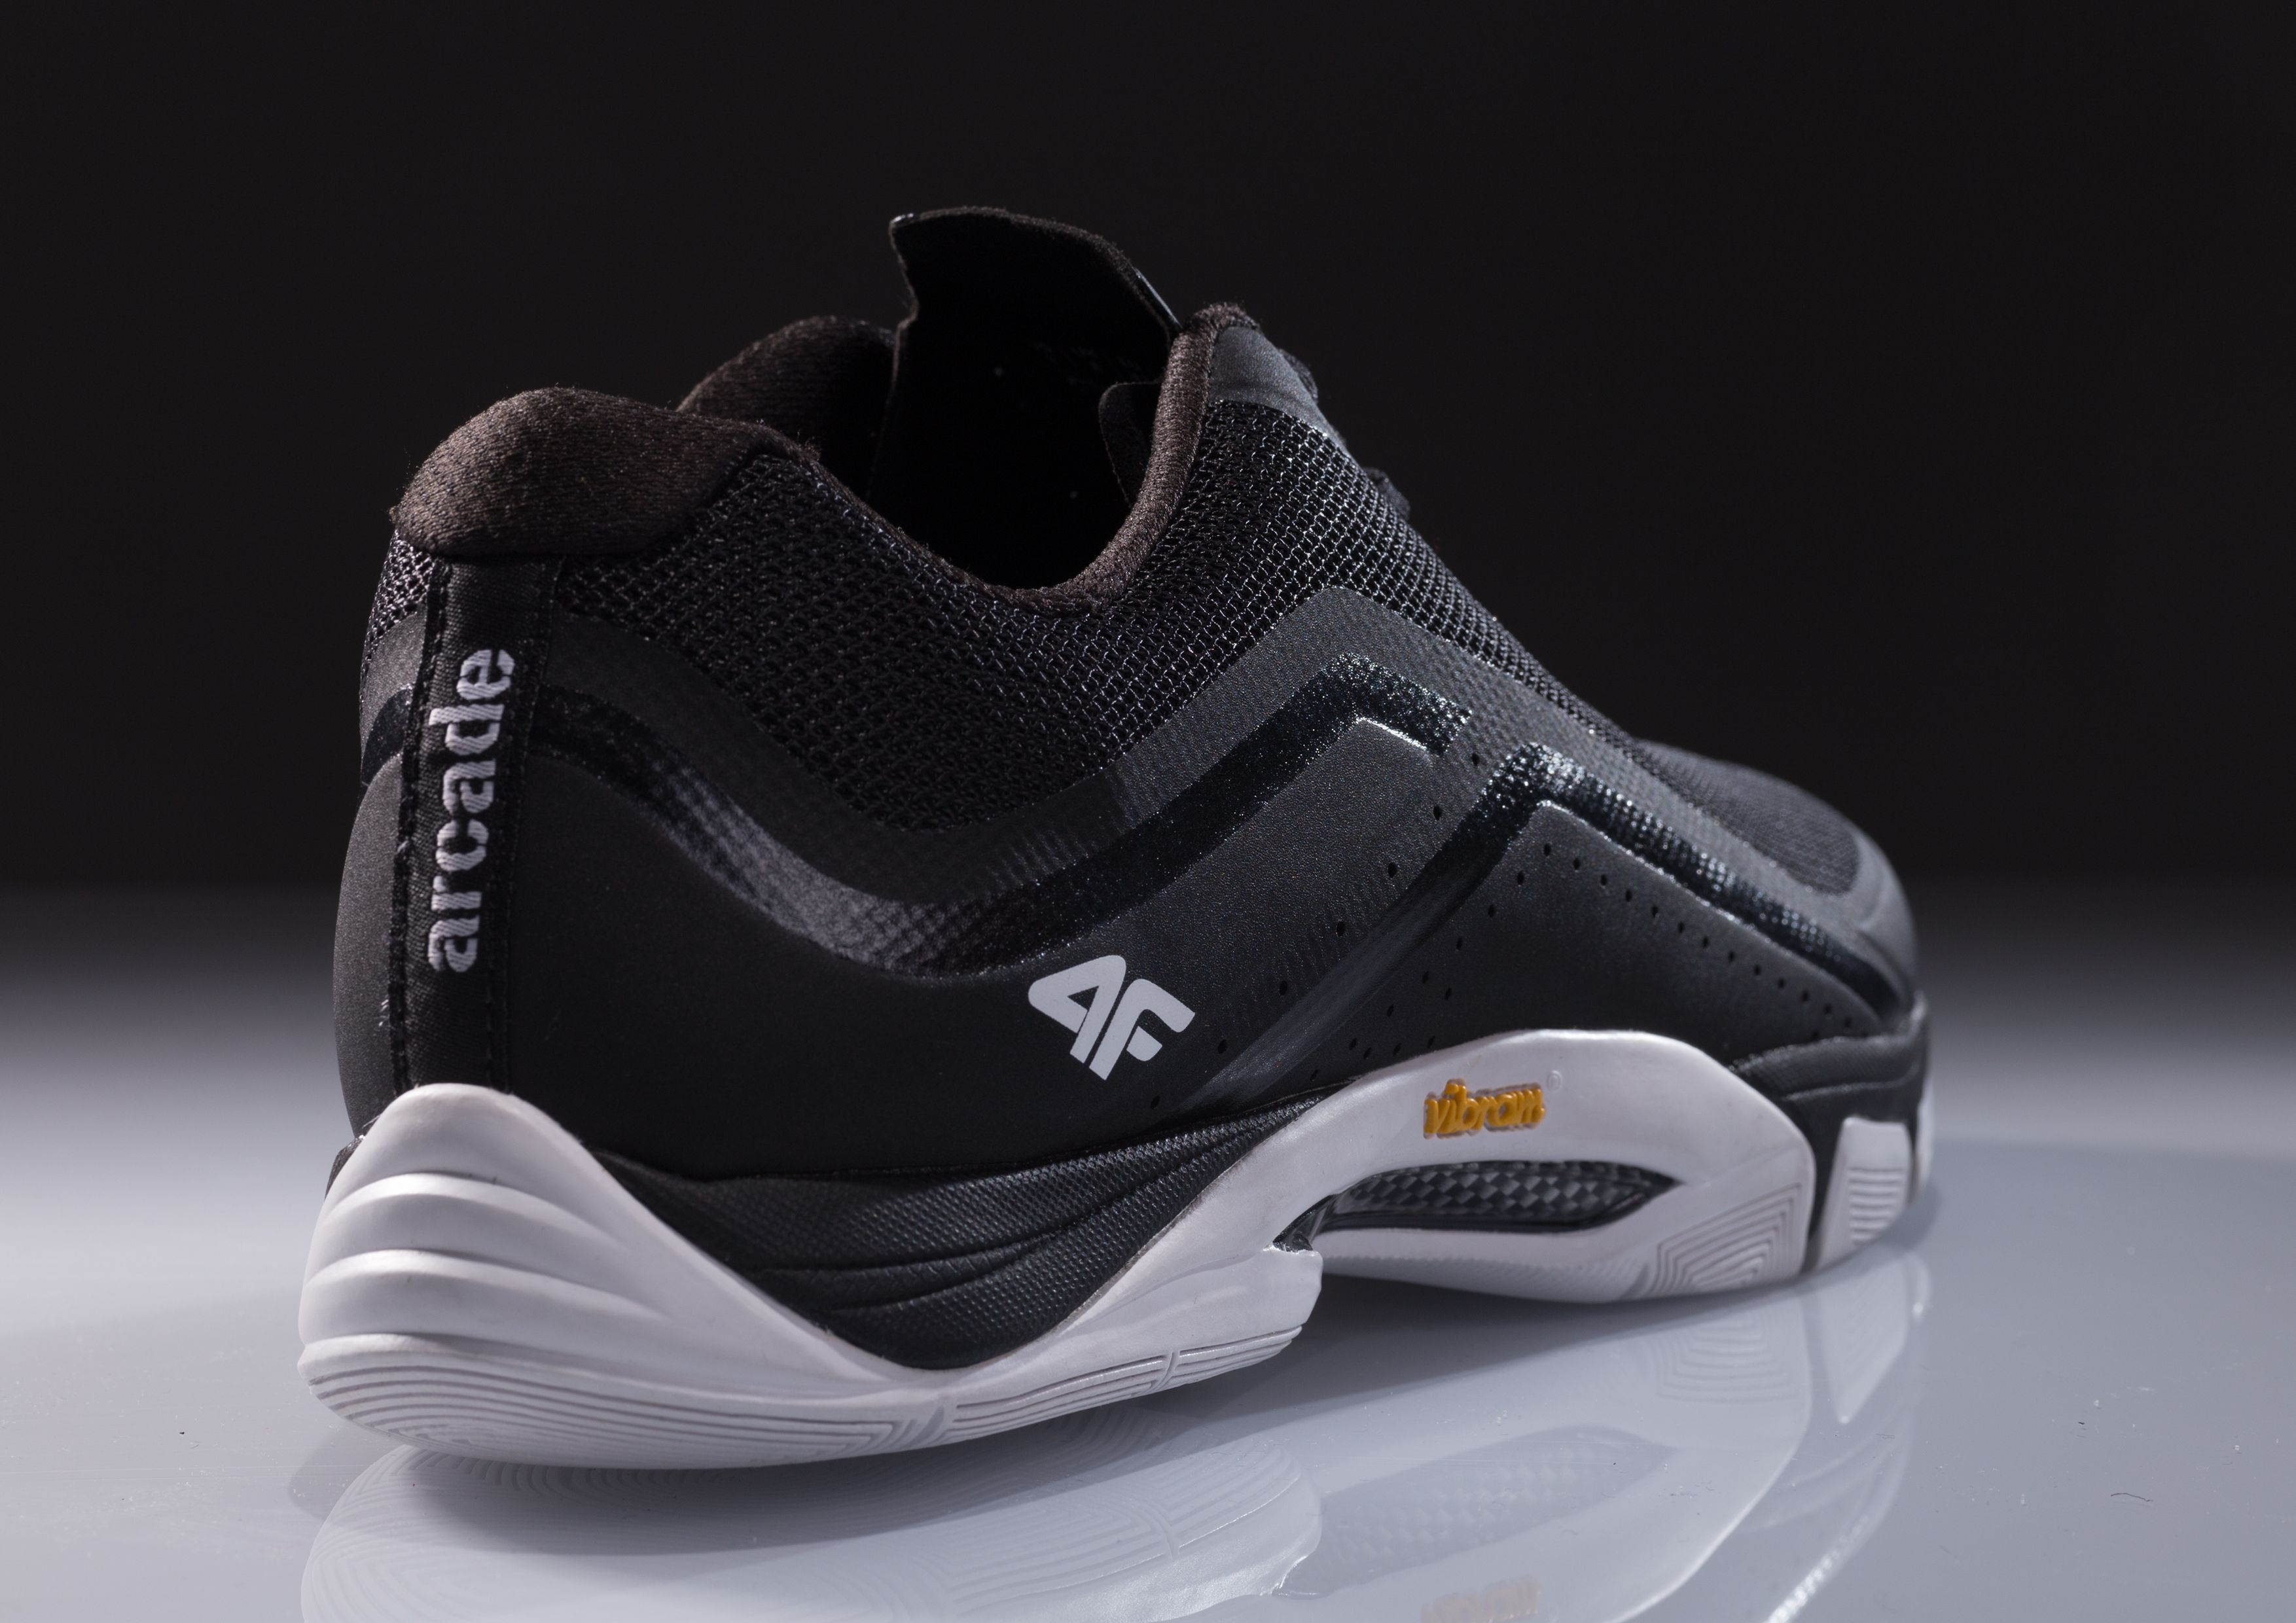 Pin By Mateusz Rzadkosz On Cross Fit Training Shoes Training Shoes Shoes Arcade